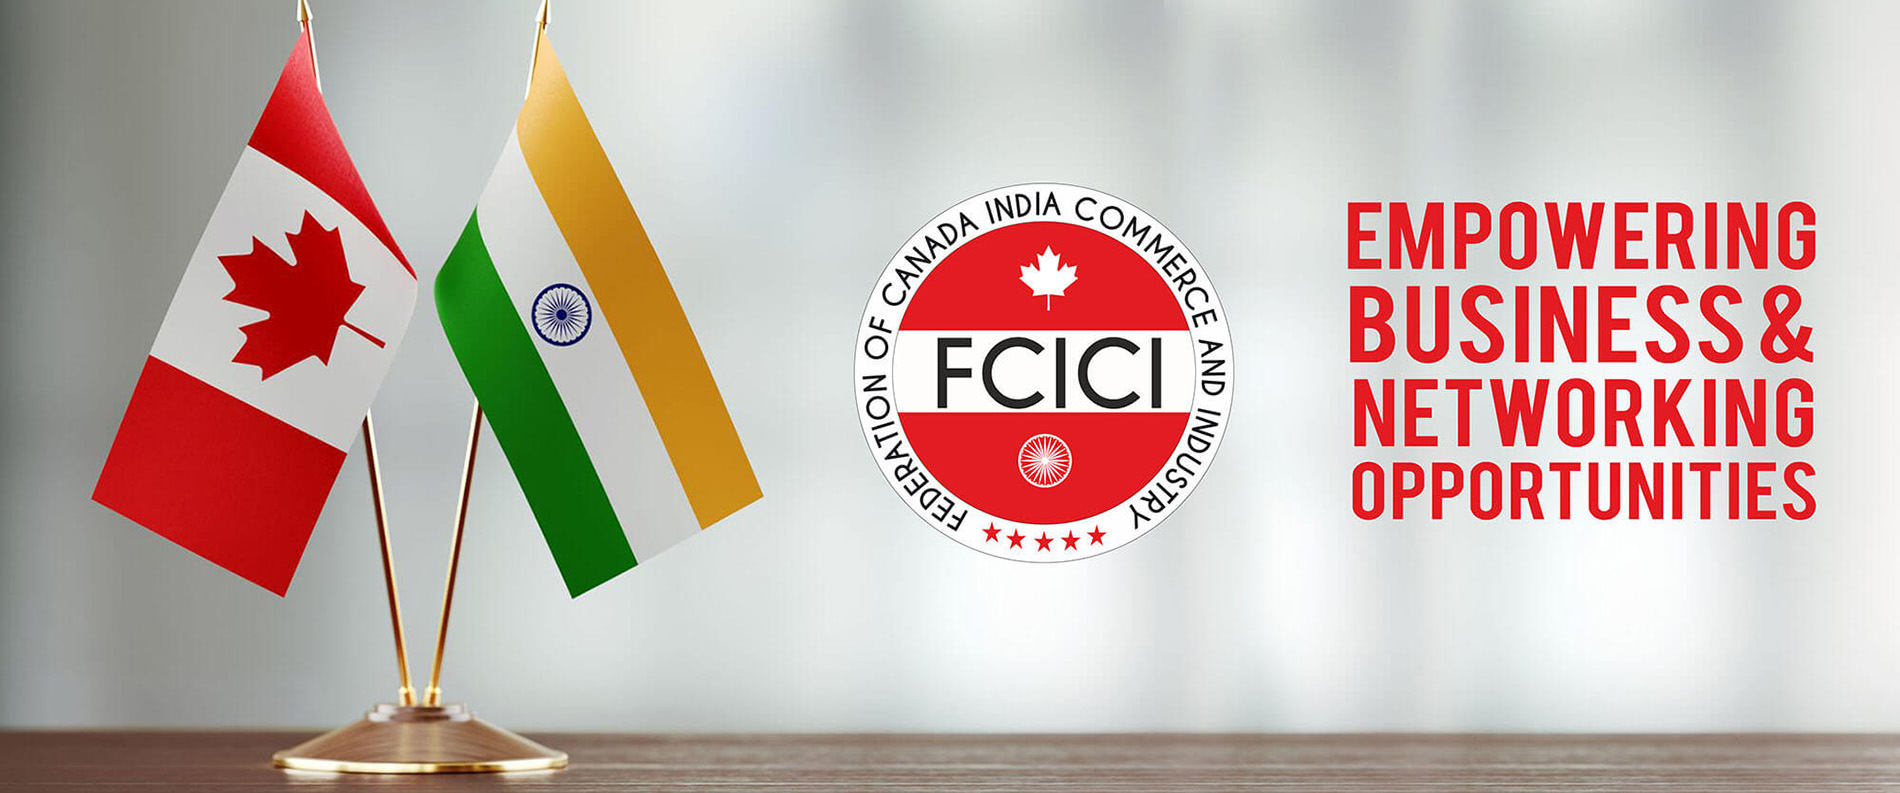 FCICI - Empowering Business